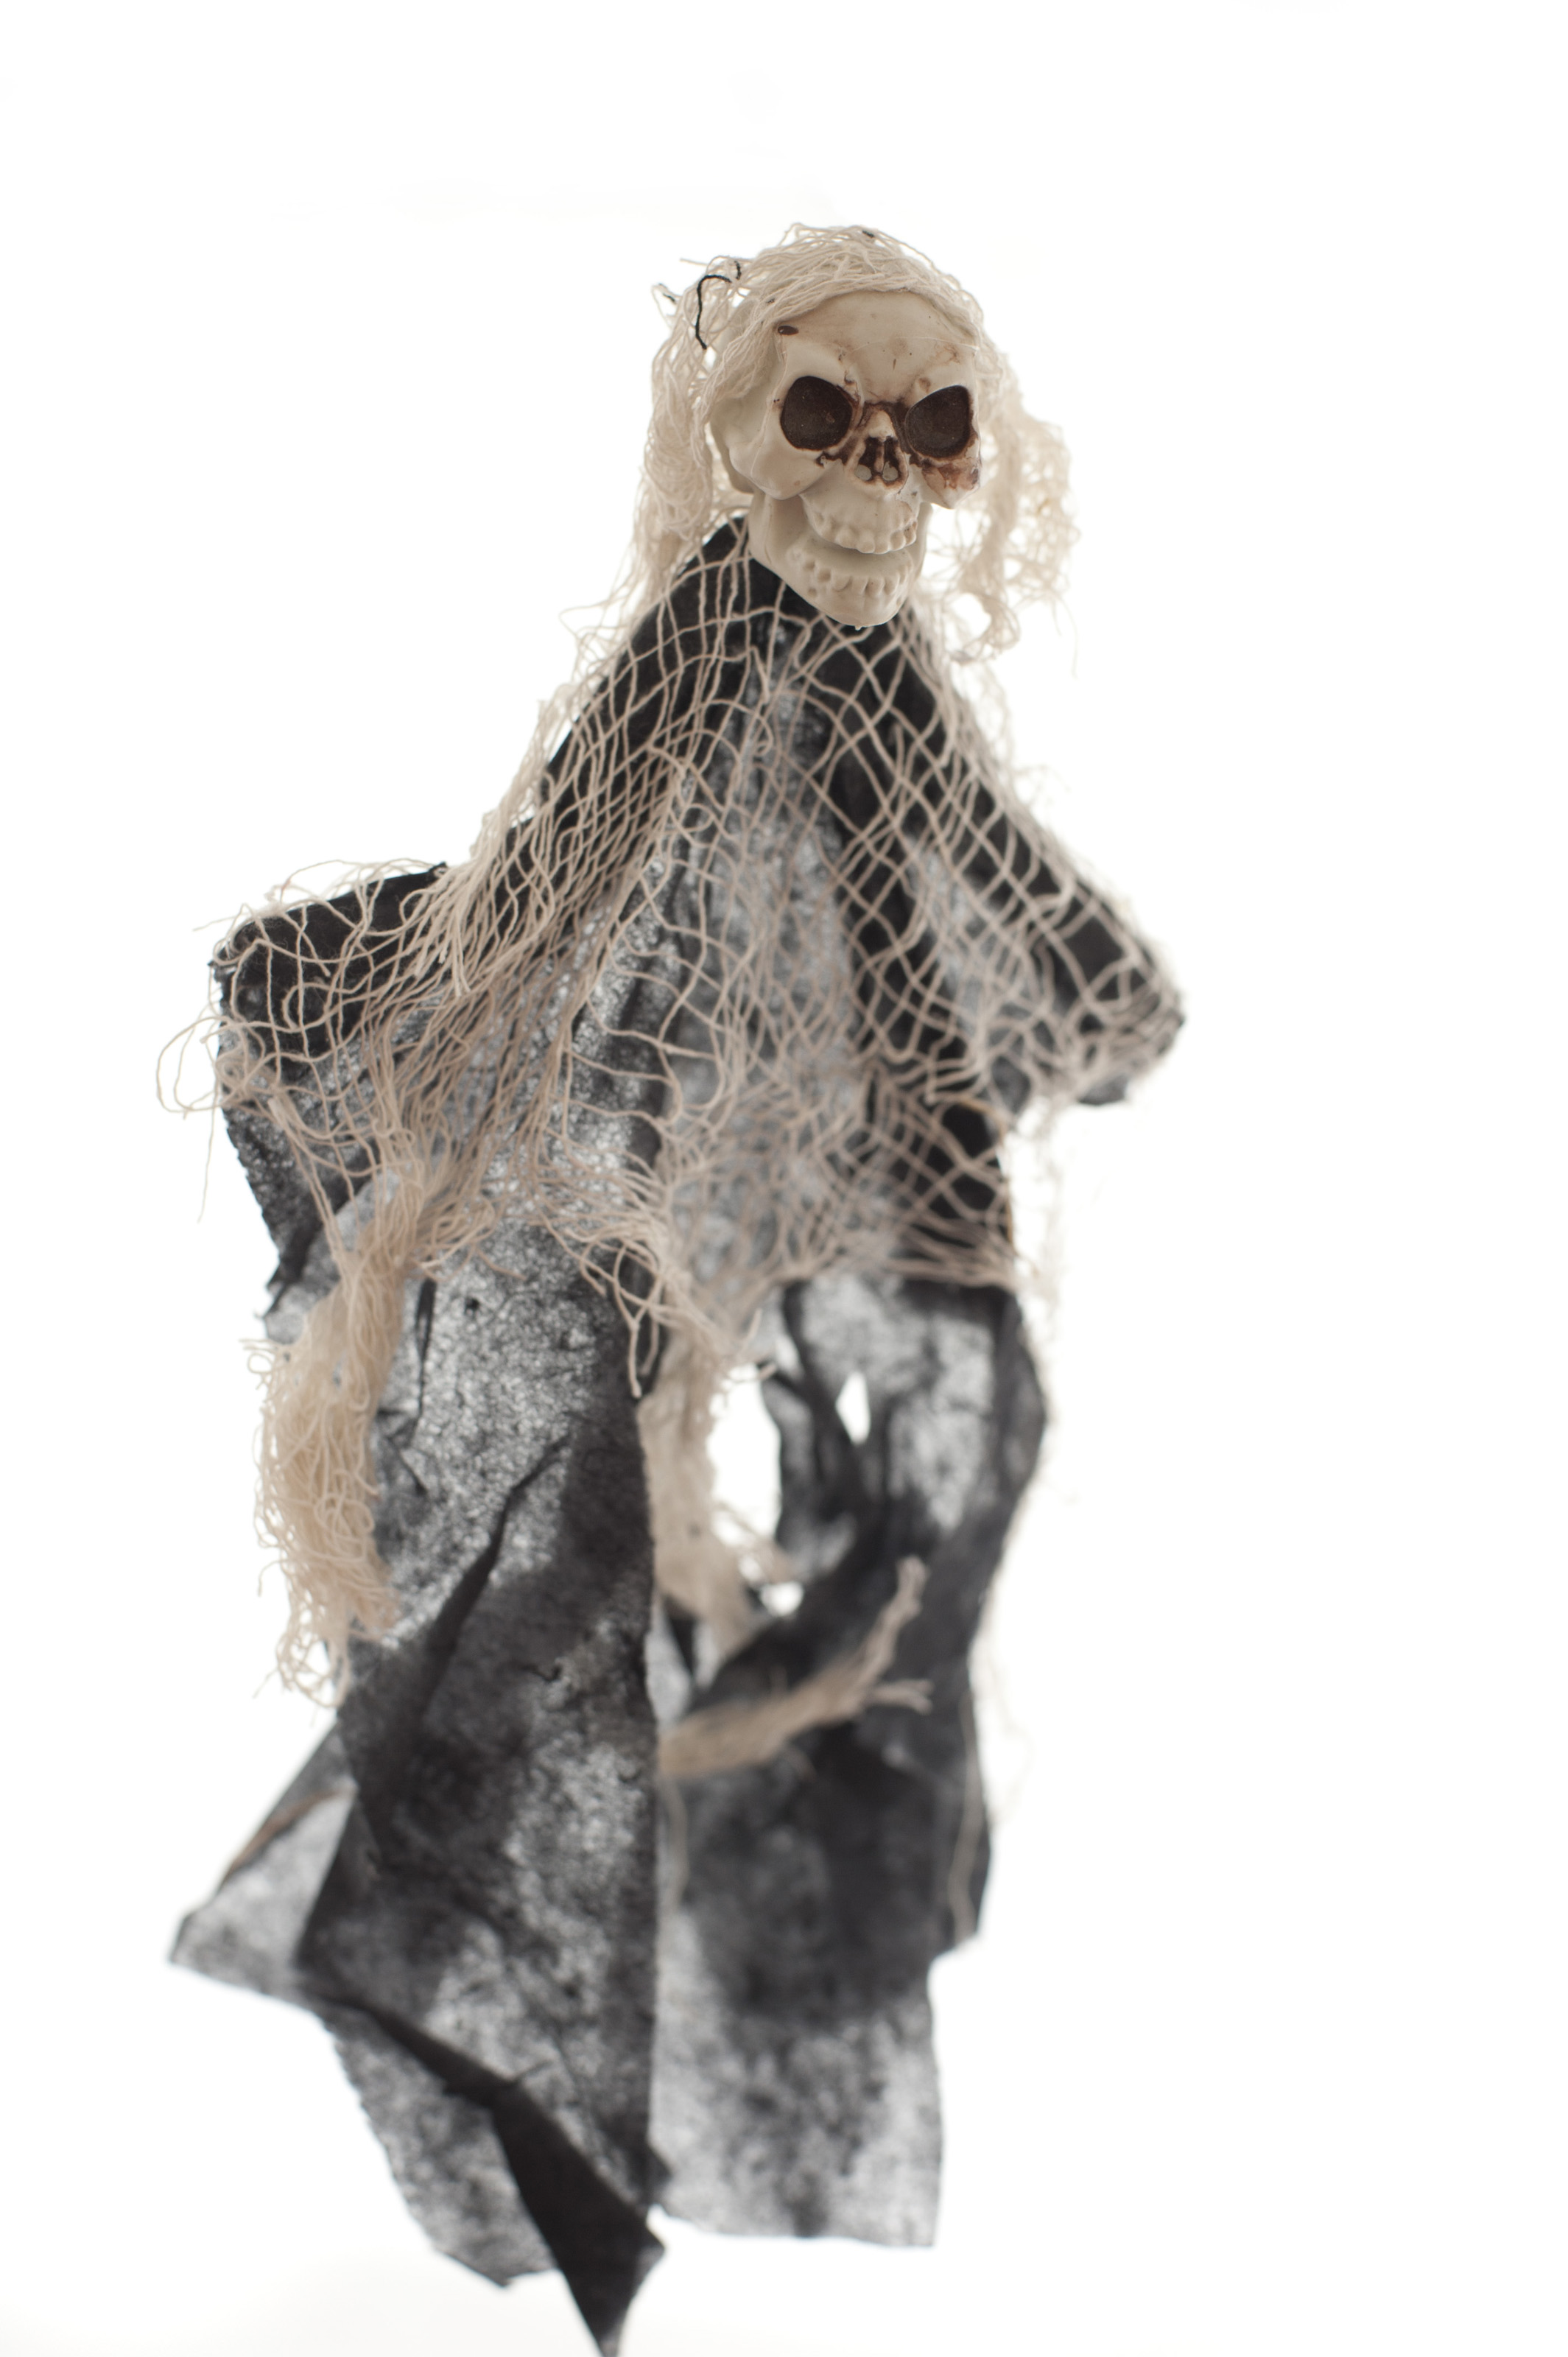 Skull with scraggly hair as Halloween spirit with netting and dark dress puppet over white background